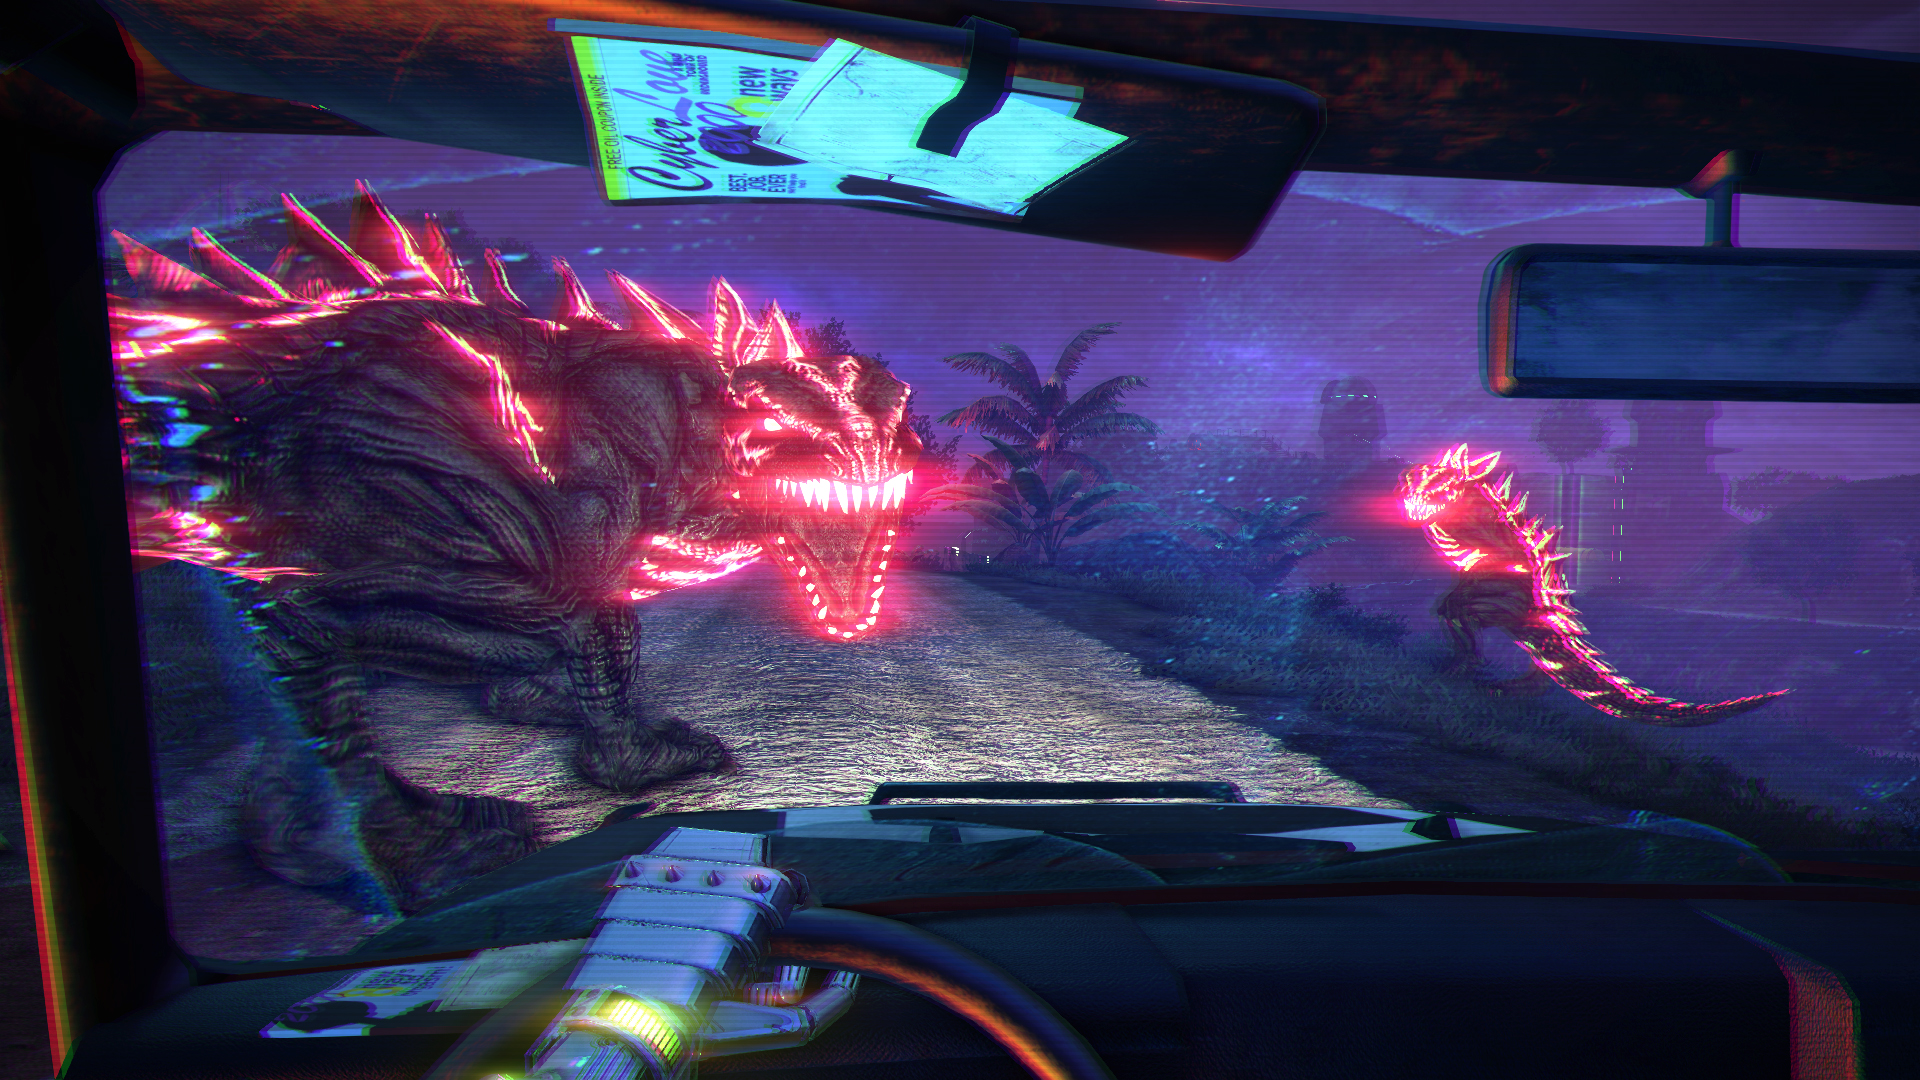 far cry 4 map editor with Far Cry 3 Blood Dragon Review 360 on Zombi Is Out Now For Ps4 Xbox One And Pc furthermore Far Cry 3 Blood Dragon Review 360 together with Sky Tiger as well Red Crowned Turtle likewise Far Cry Primal Review.